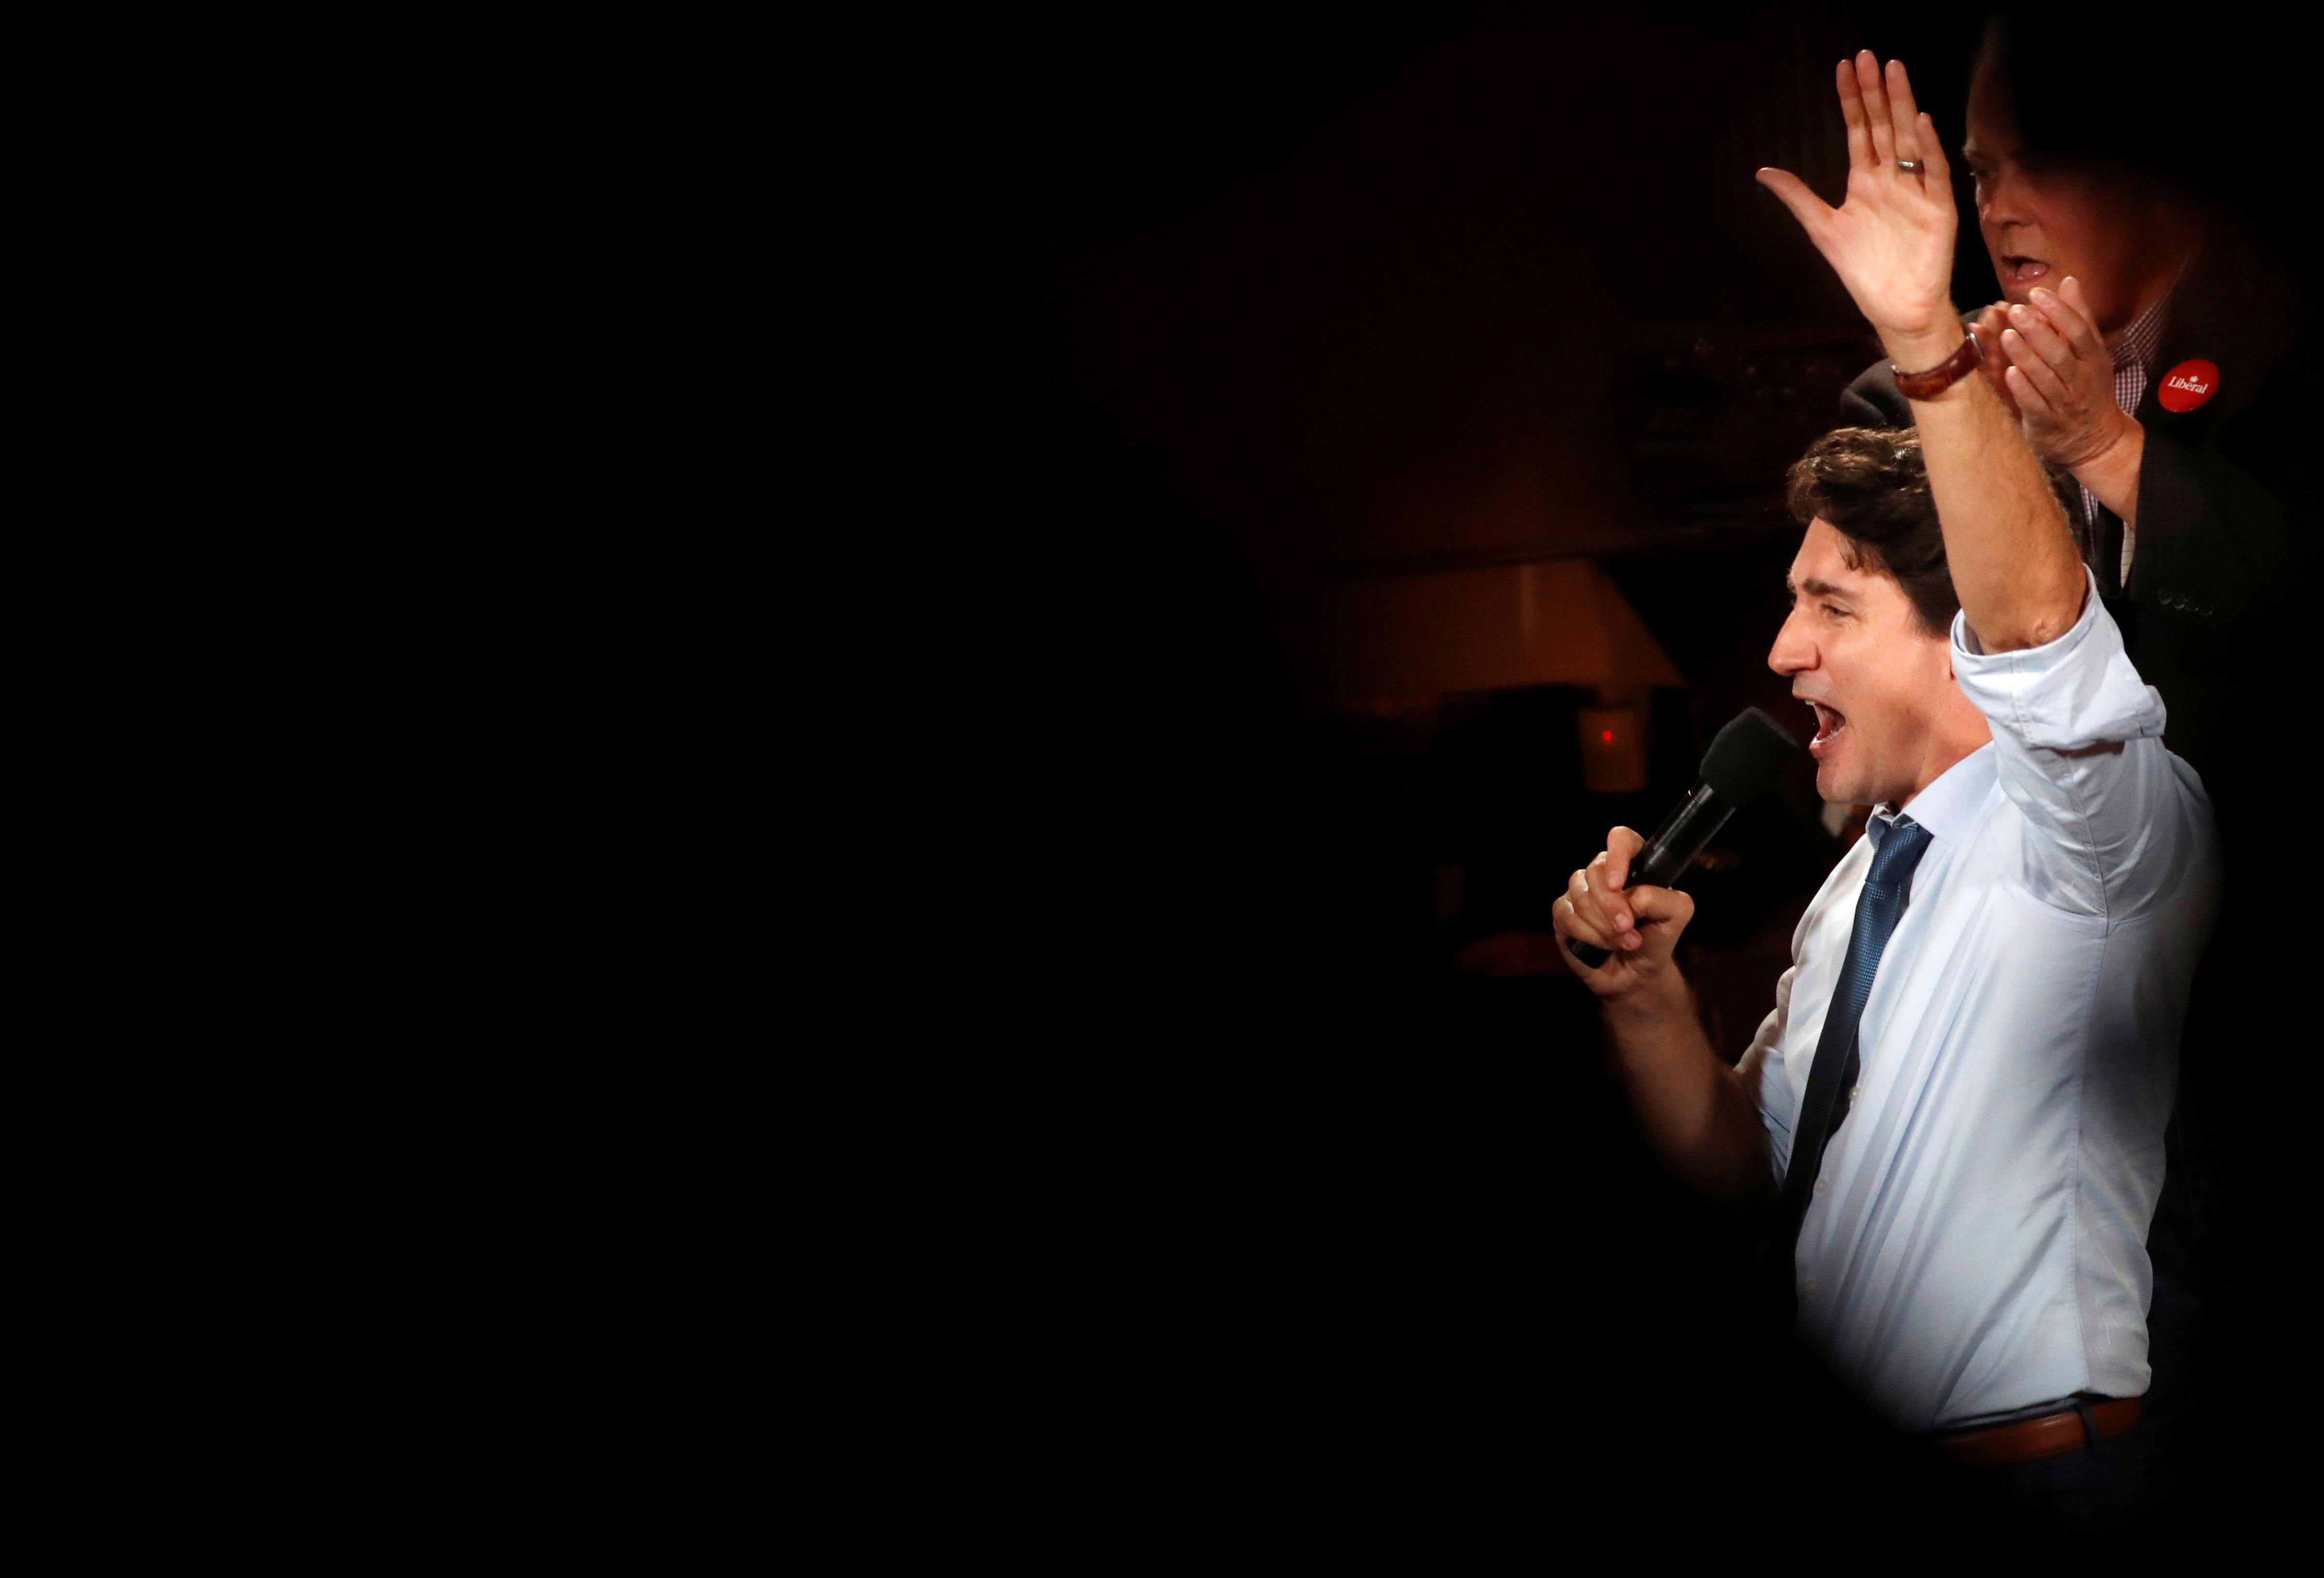 Canada's Trudeau, his 'sunny ways' darkened by scandals, seeks to...